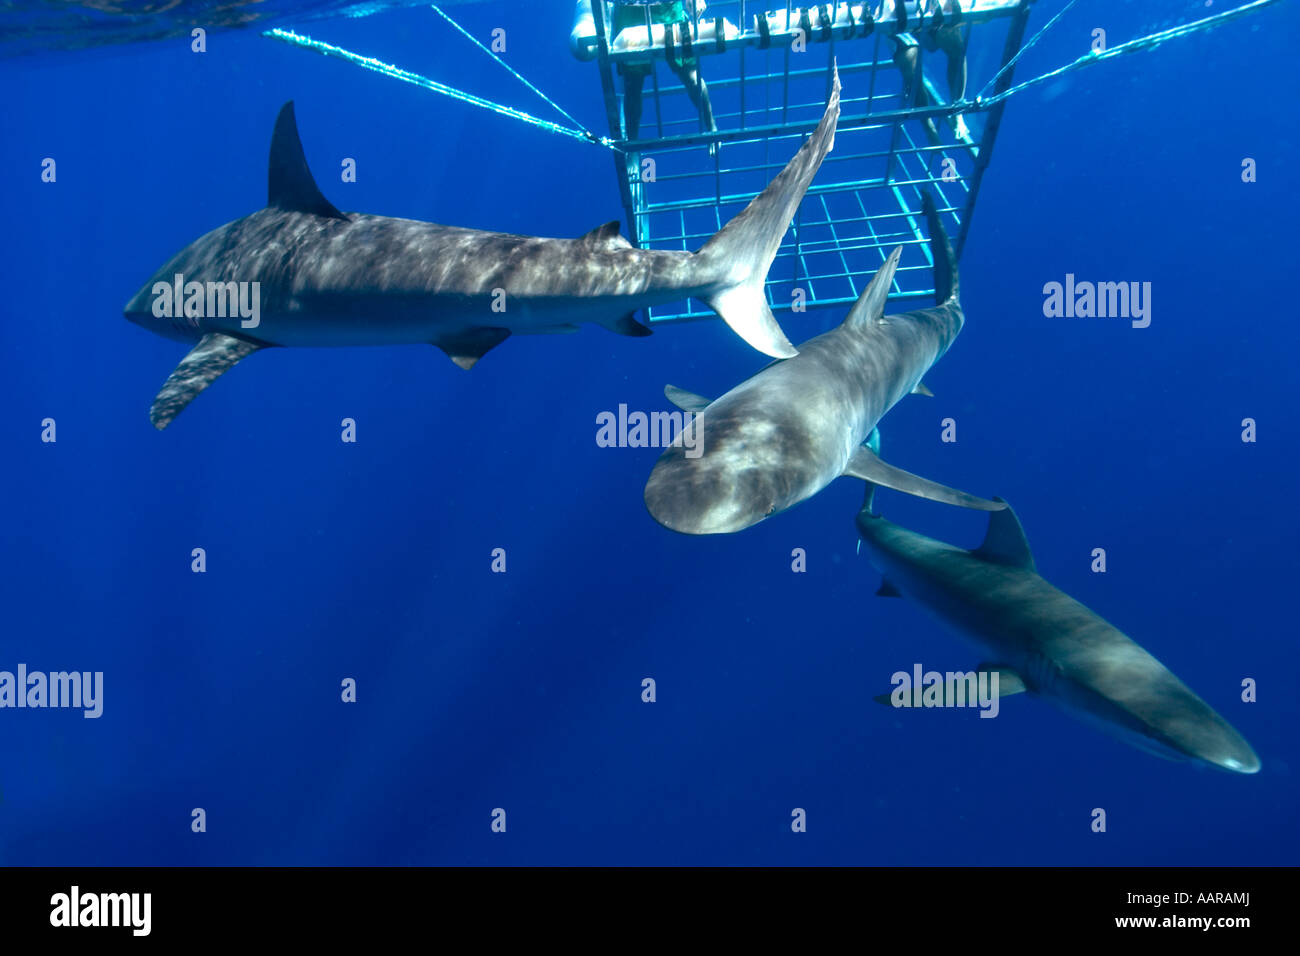 Thrill seekers experience cage diving with Galapagos sharks Carcharhinus galapagensis North shore Oahu Hawaii USA - Stock Image